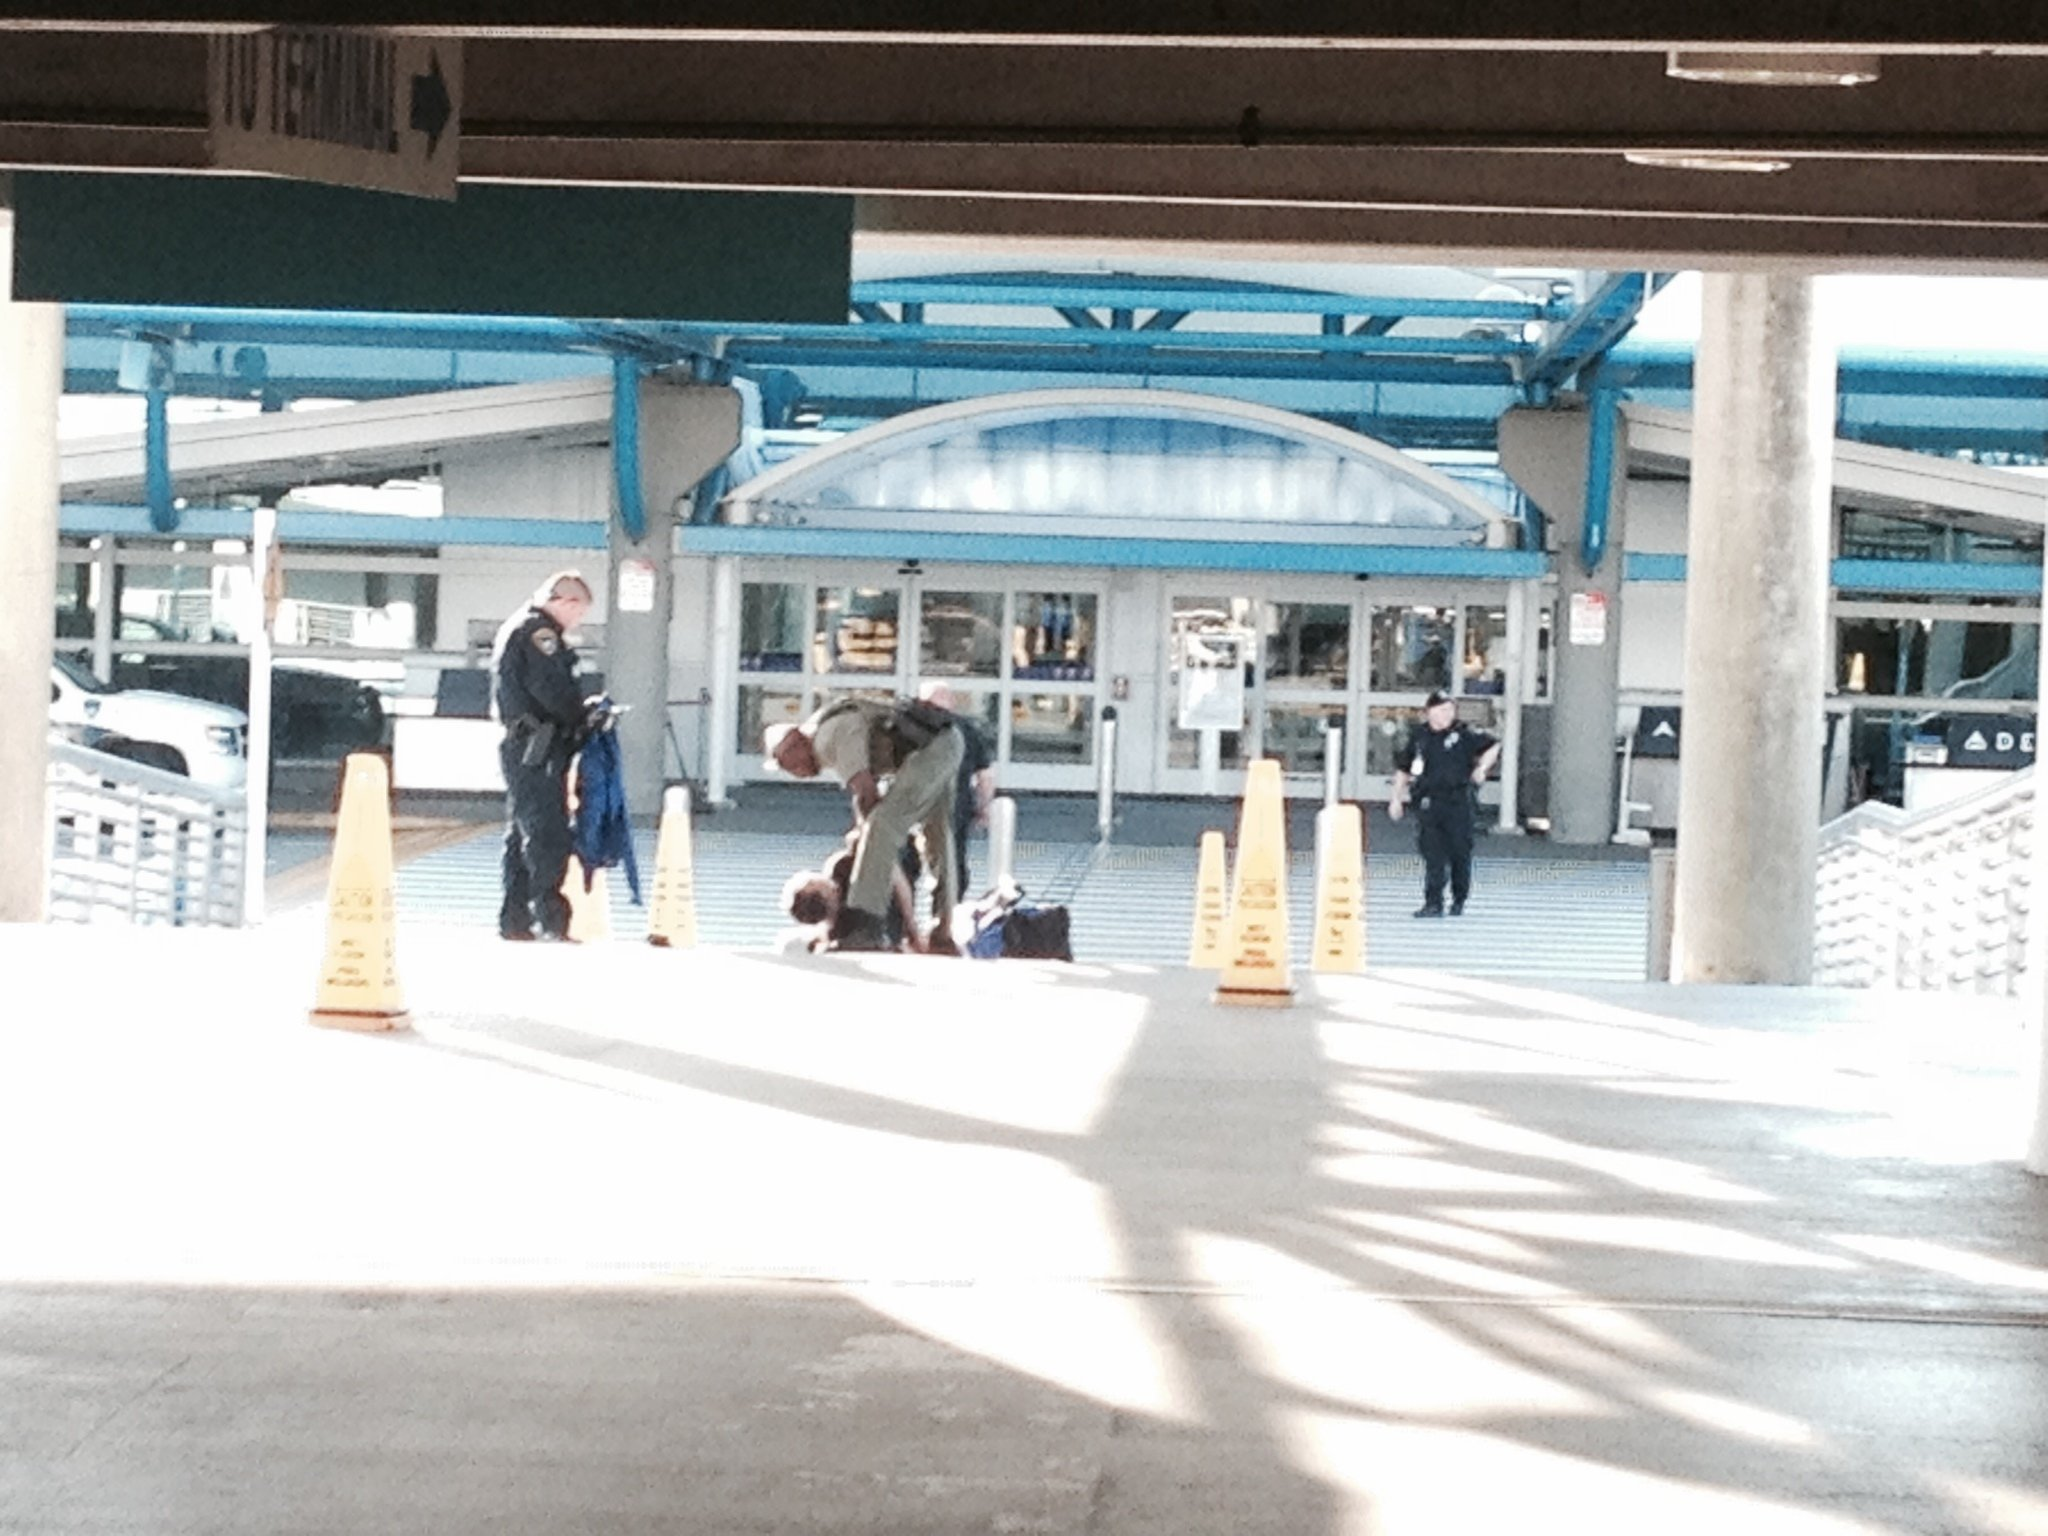 Suspicious Packages at Jacksonville International Airport